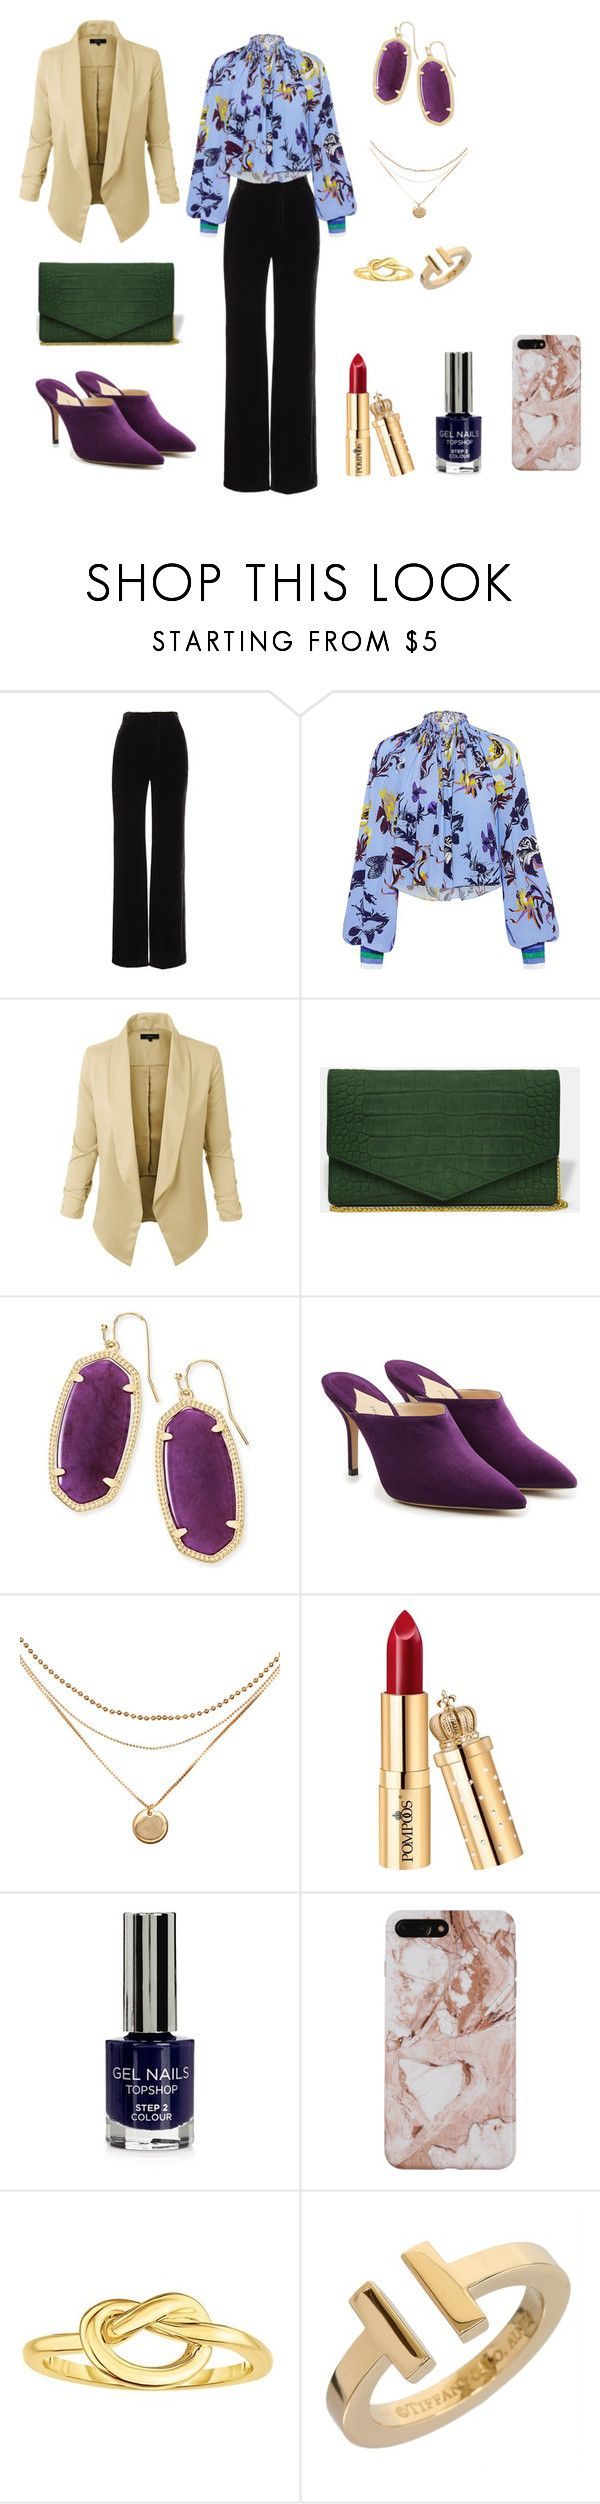 """""""triangulo o pera"""" by ananleke on Polyvore featuring moda, Vince, TIBI, LE3NO, Kendra Scott, Paul Andrew, Topshop y Tiffany & Co."""